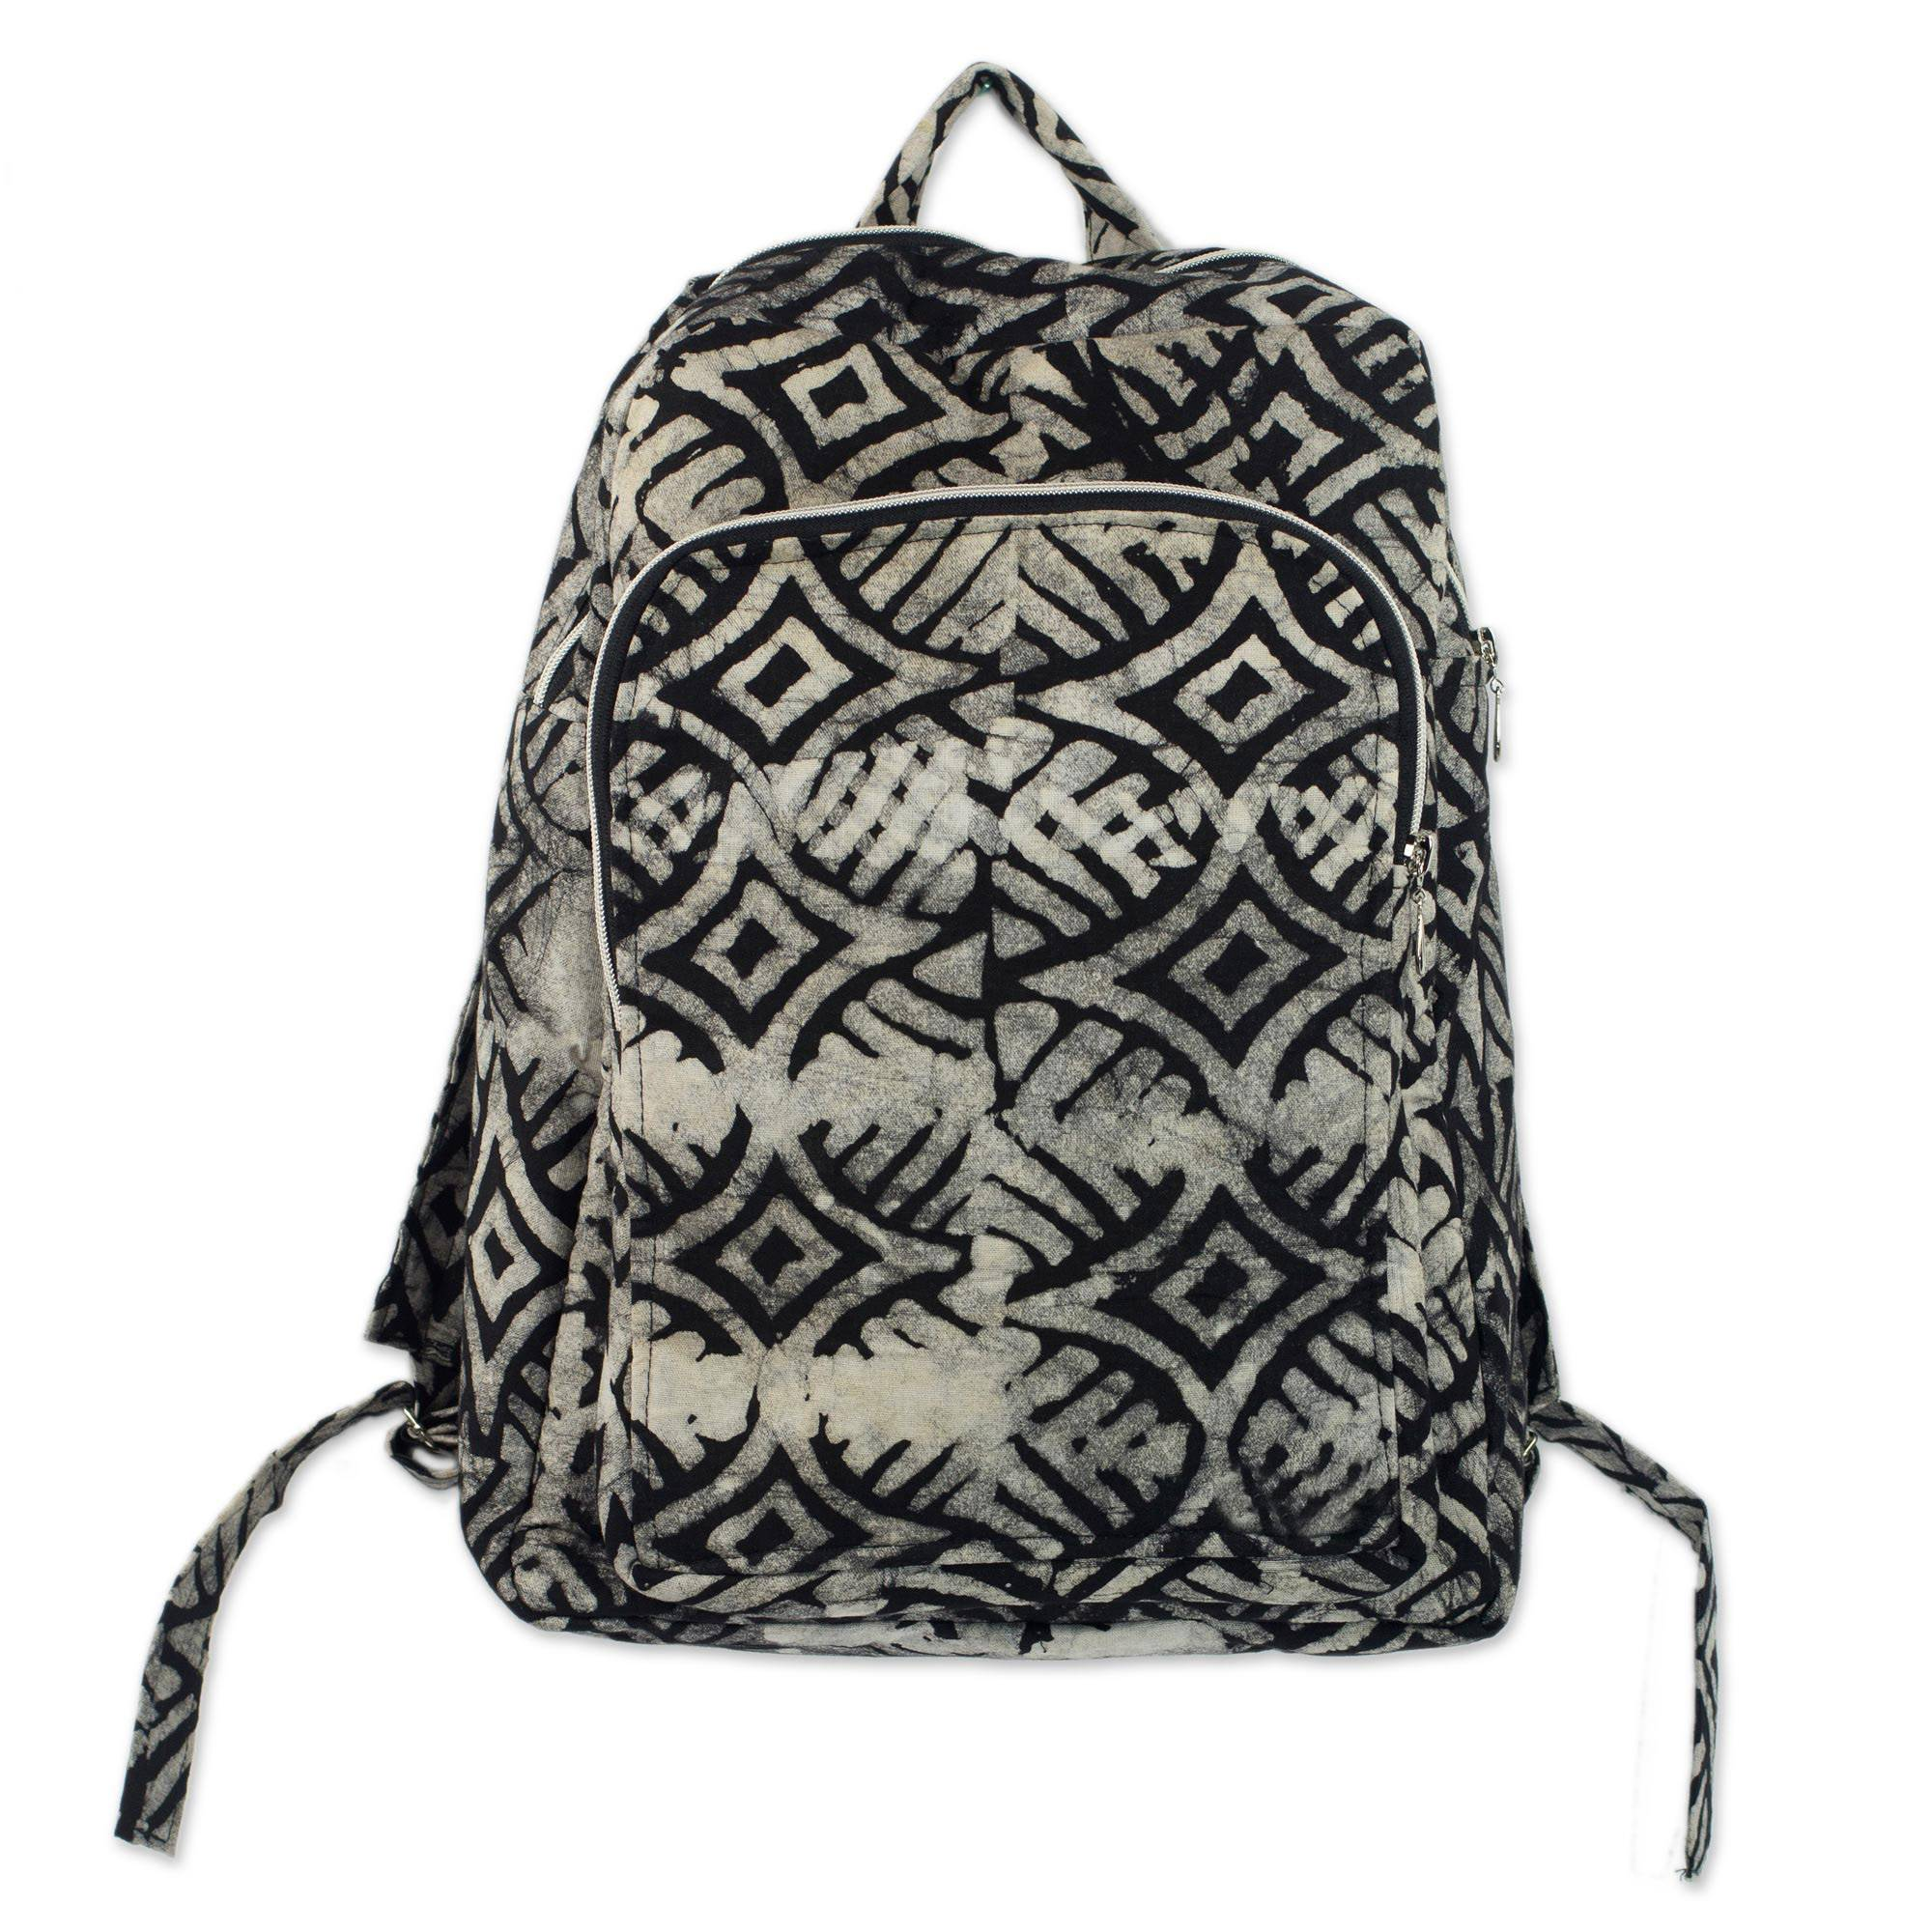 Novica Cotton backpack, Abanga